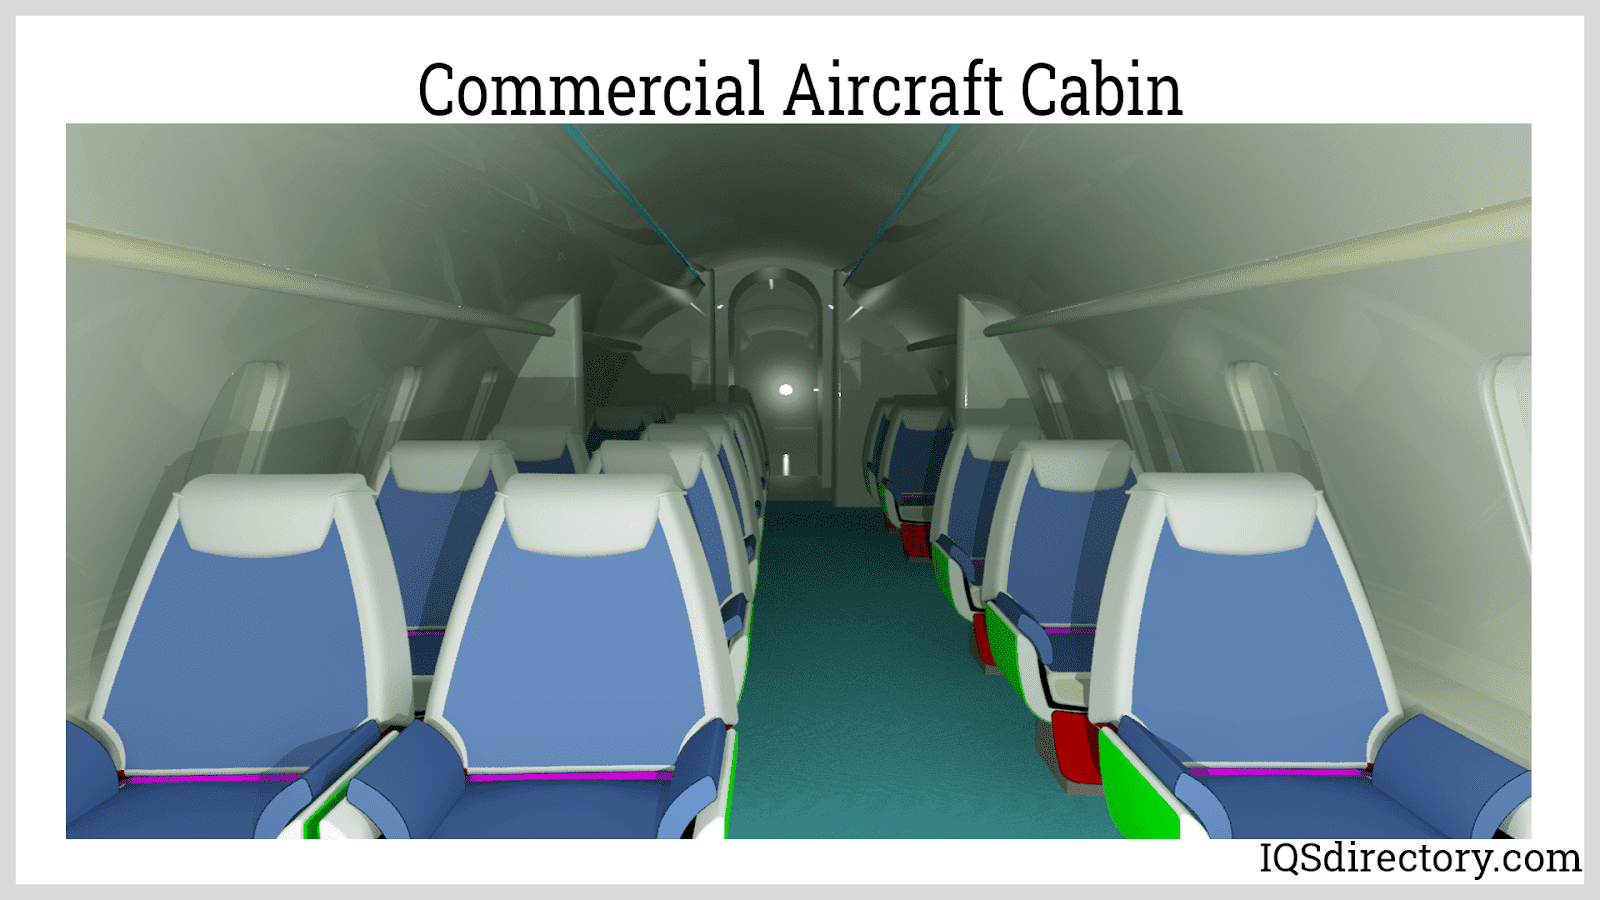 Commercial Aircraft Cabin